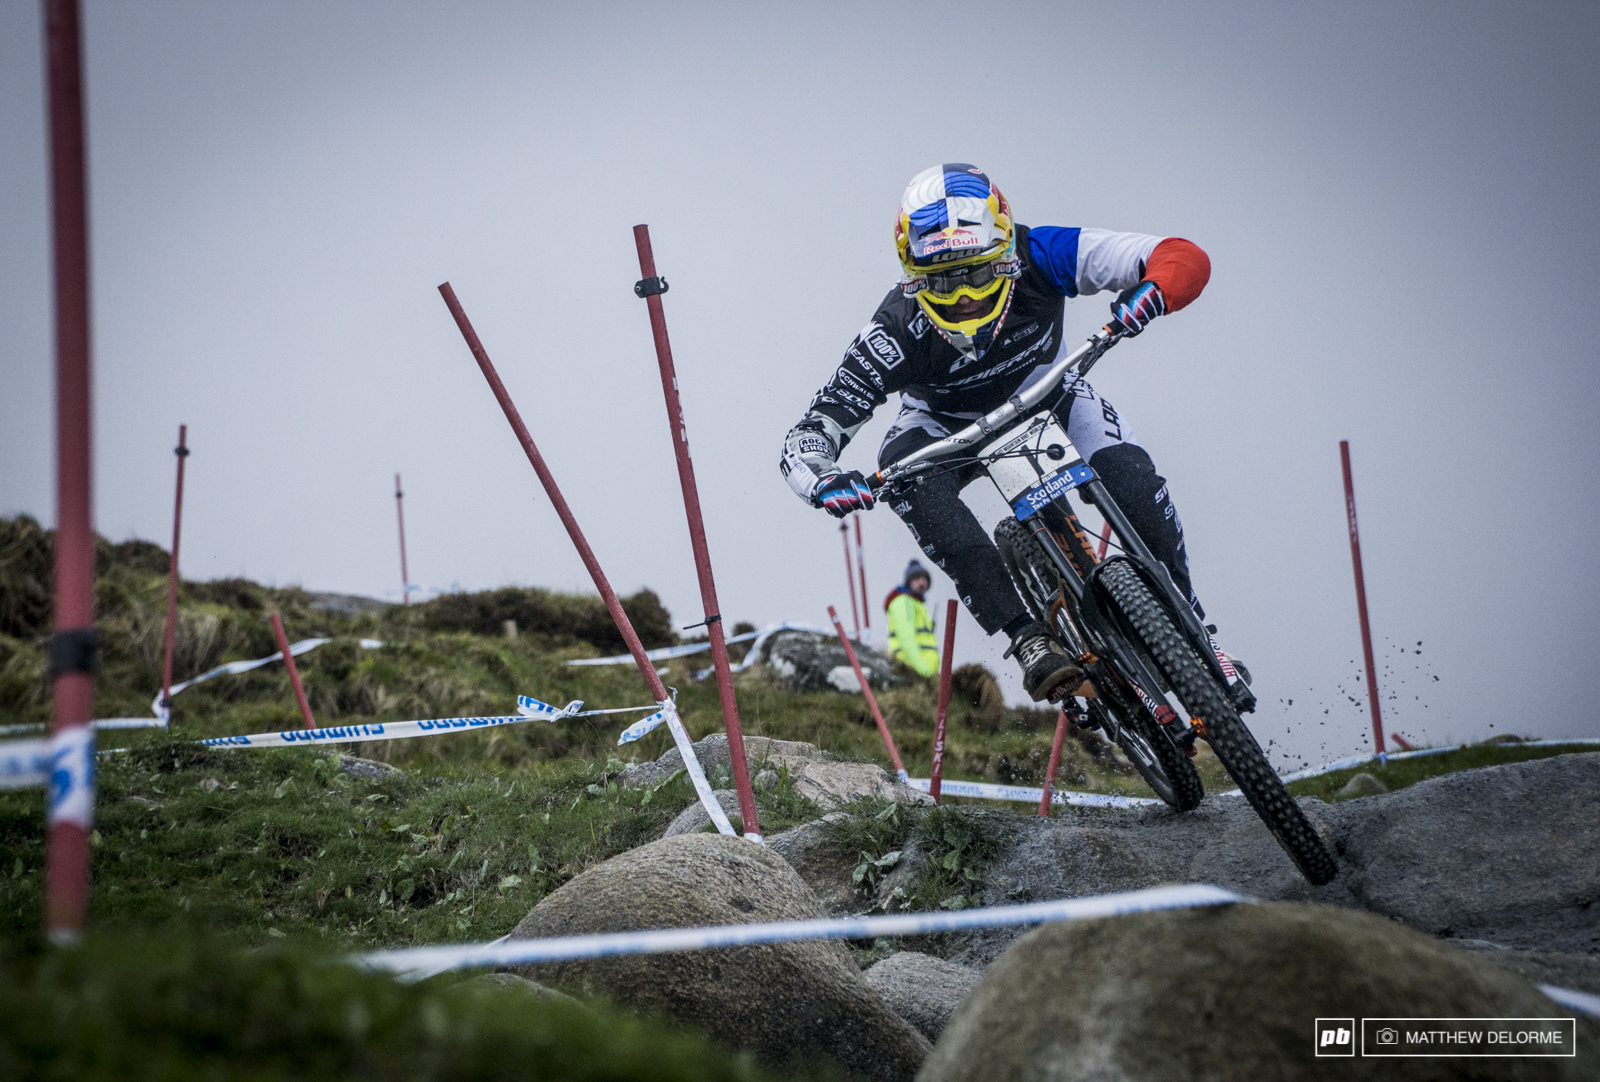 Loic Bruni had an off today that cost him what very well could have been a win here in Fort William. Bruni finished seventh.